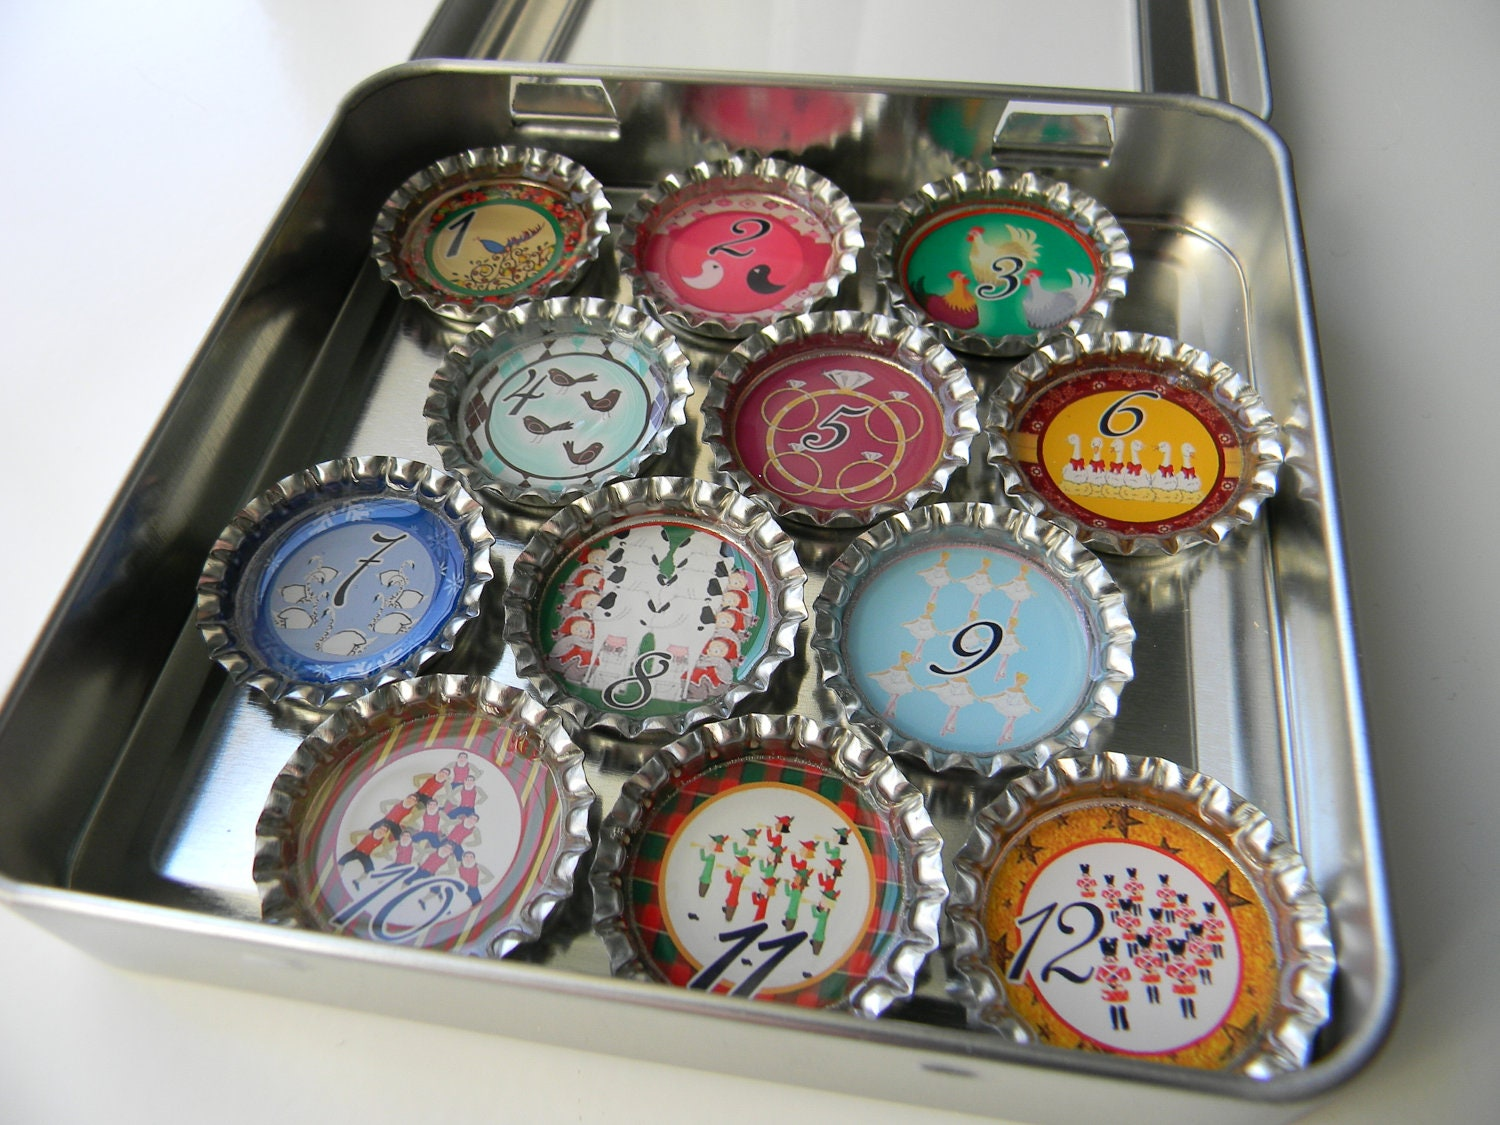 HOLIDAY SPECIAL The 12 Days of Chrstimas Bottle Cap Magnet Set of 12 in a Gift Tin Perfect for an Extra Stocking Stuffer